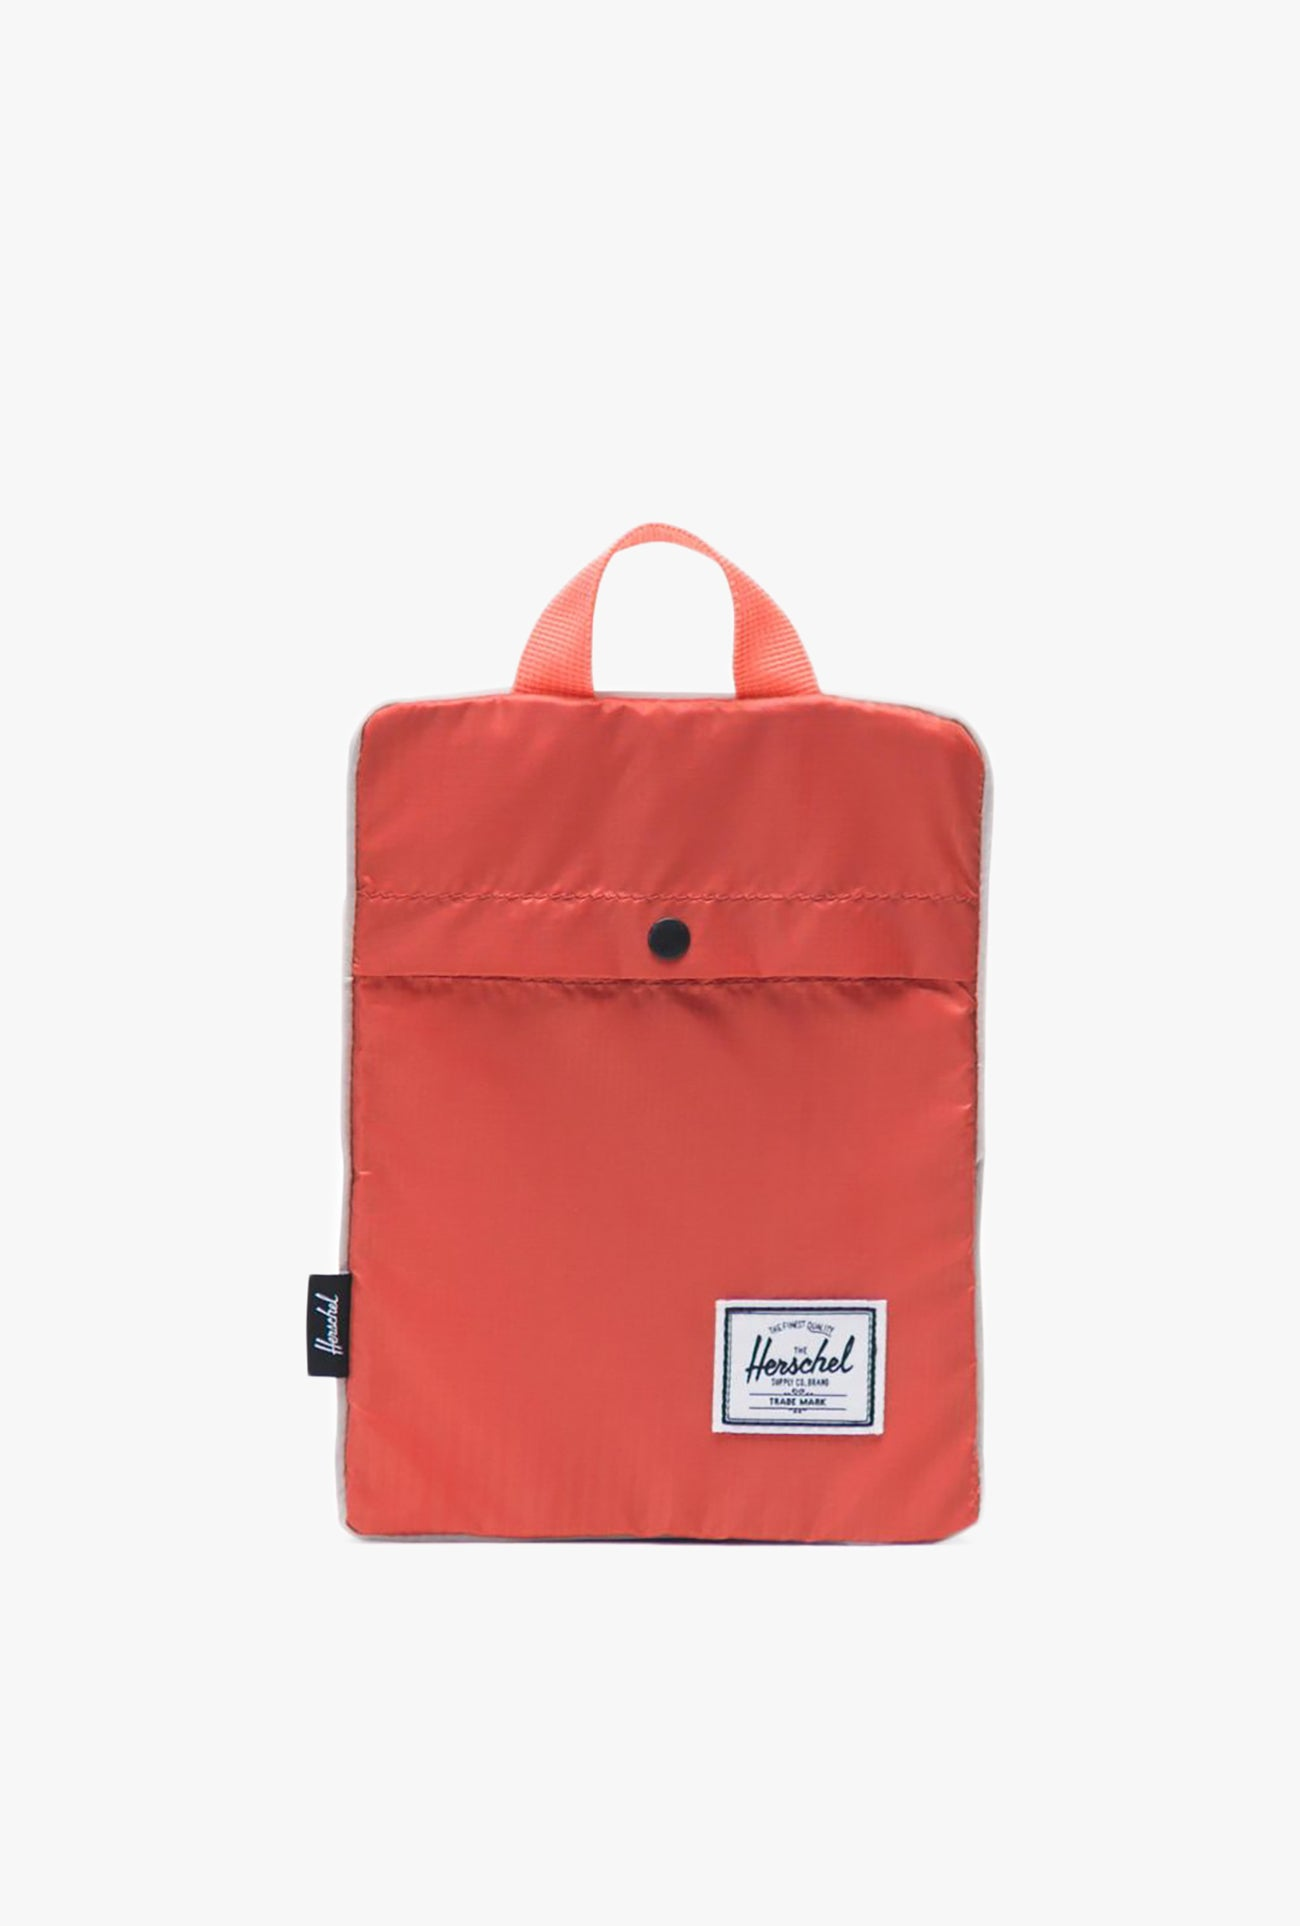 Packable Daypack - Apricot Brown